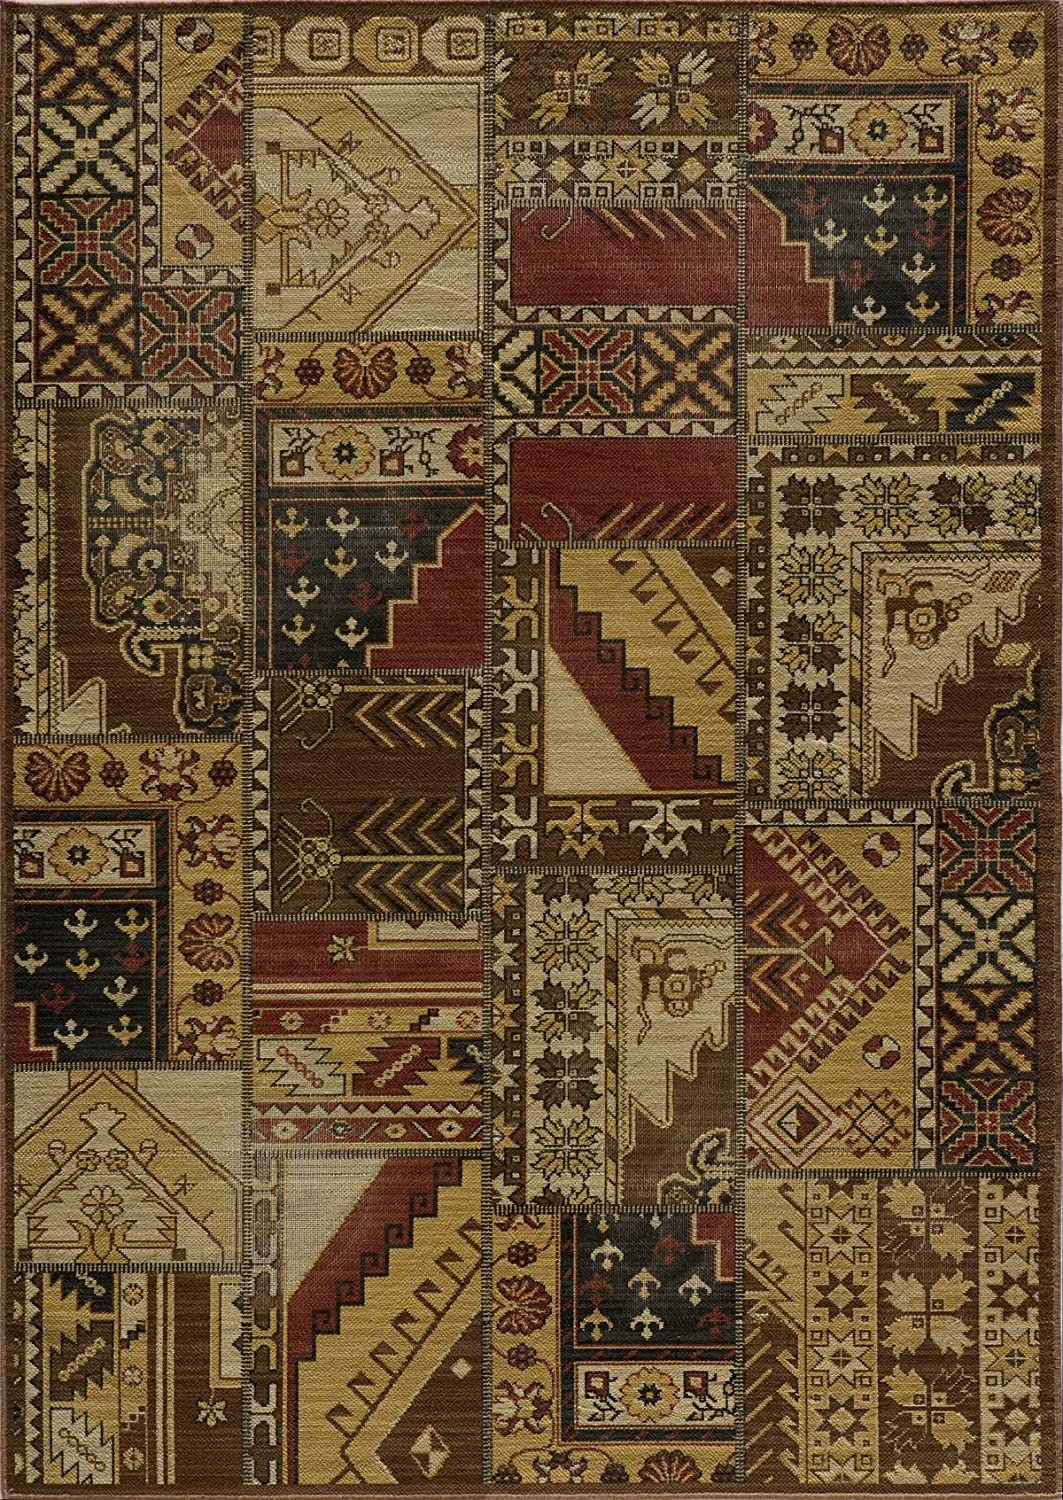 Momeni Rugs VINTAVIN8TRG1828 Vintage Collection, 100% New Zealand Wool Power Loomed Flatweave Transitional Area Rug, 1'8  x 2'8 , Tribal gold